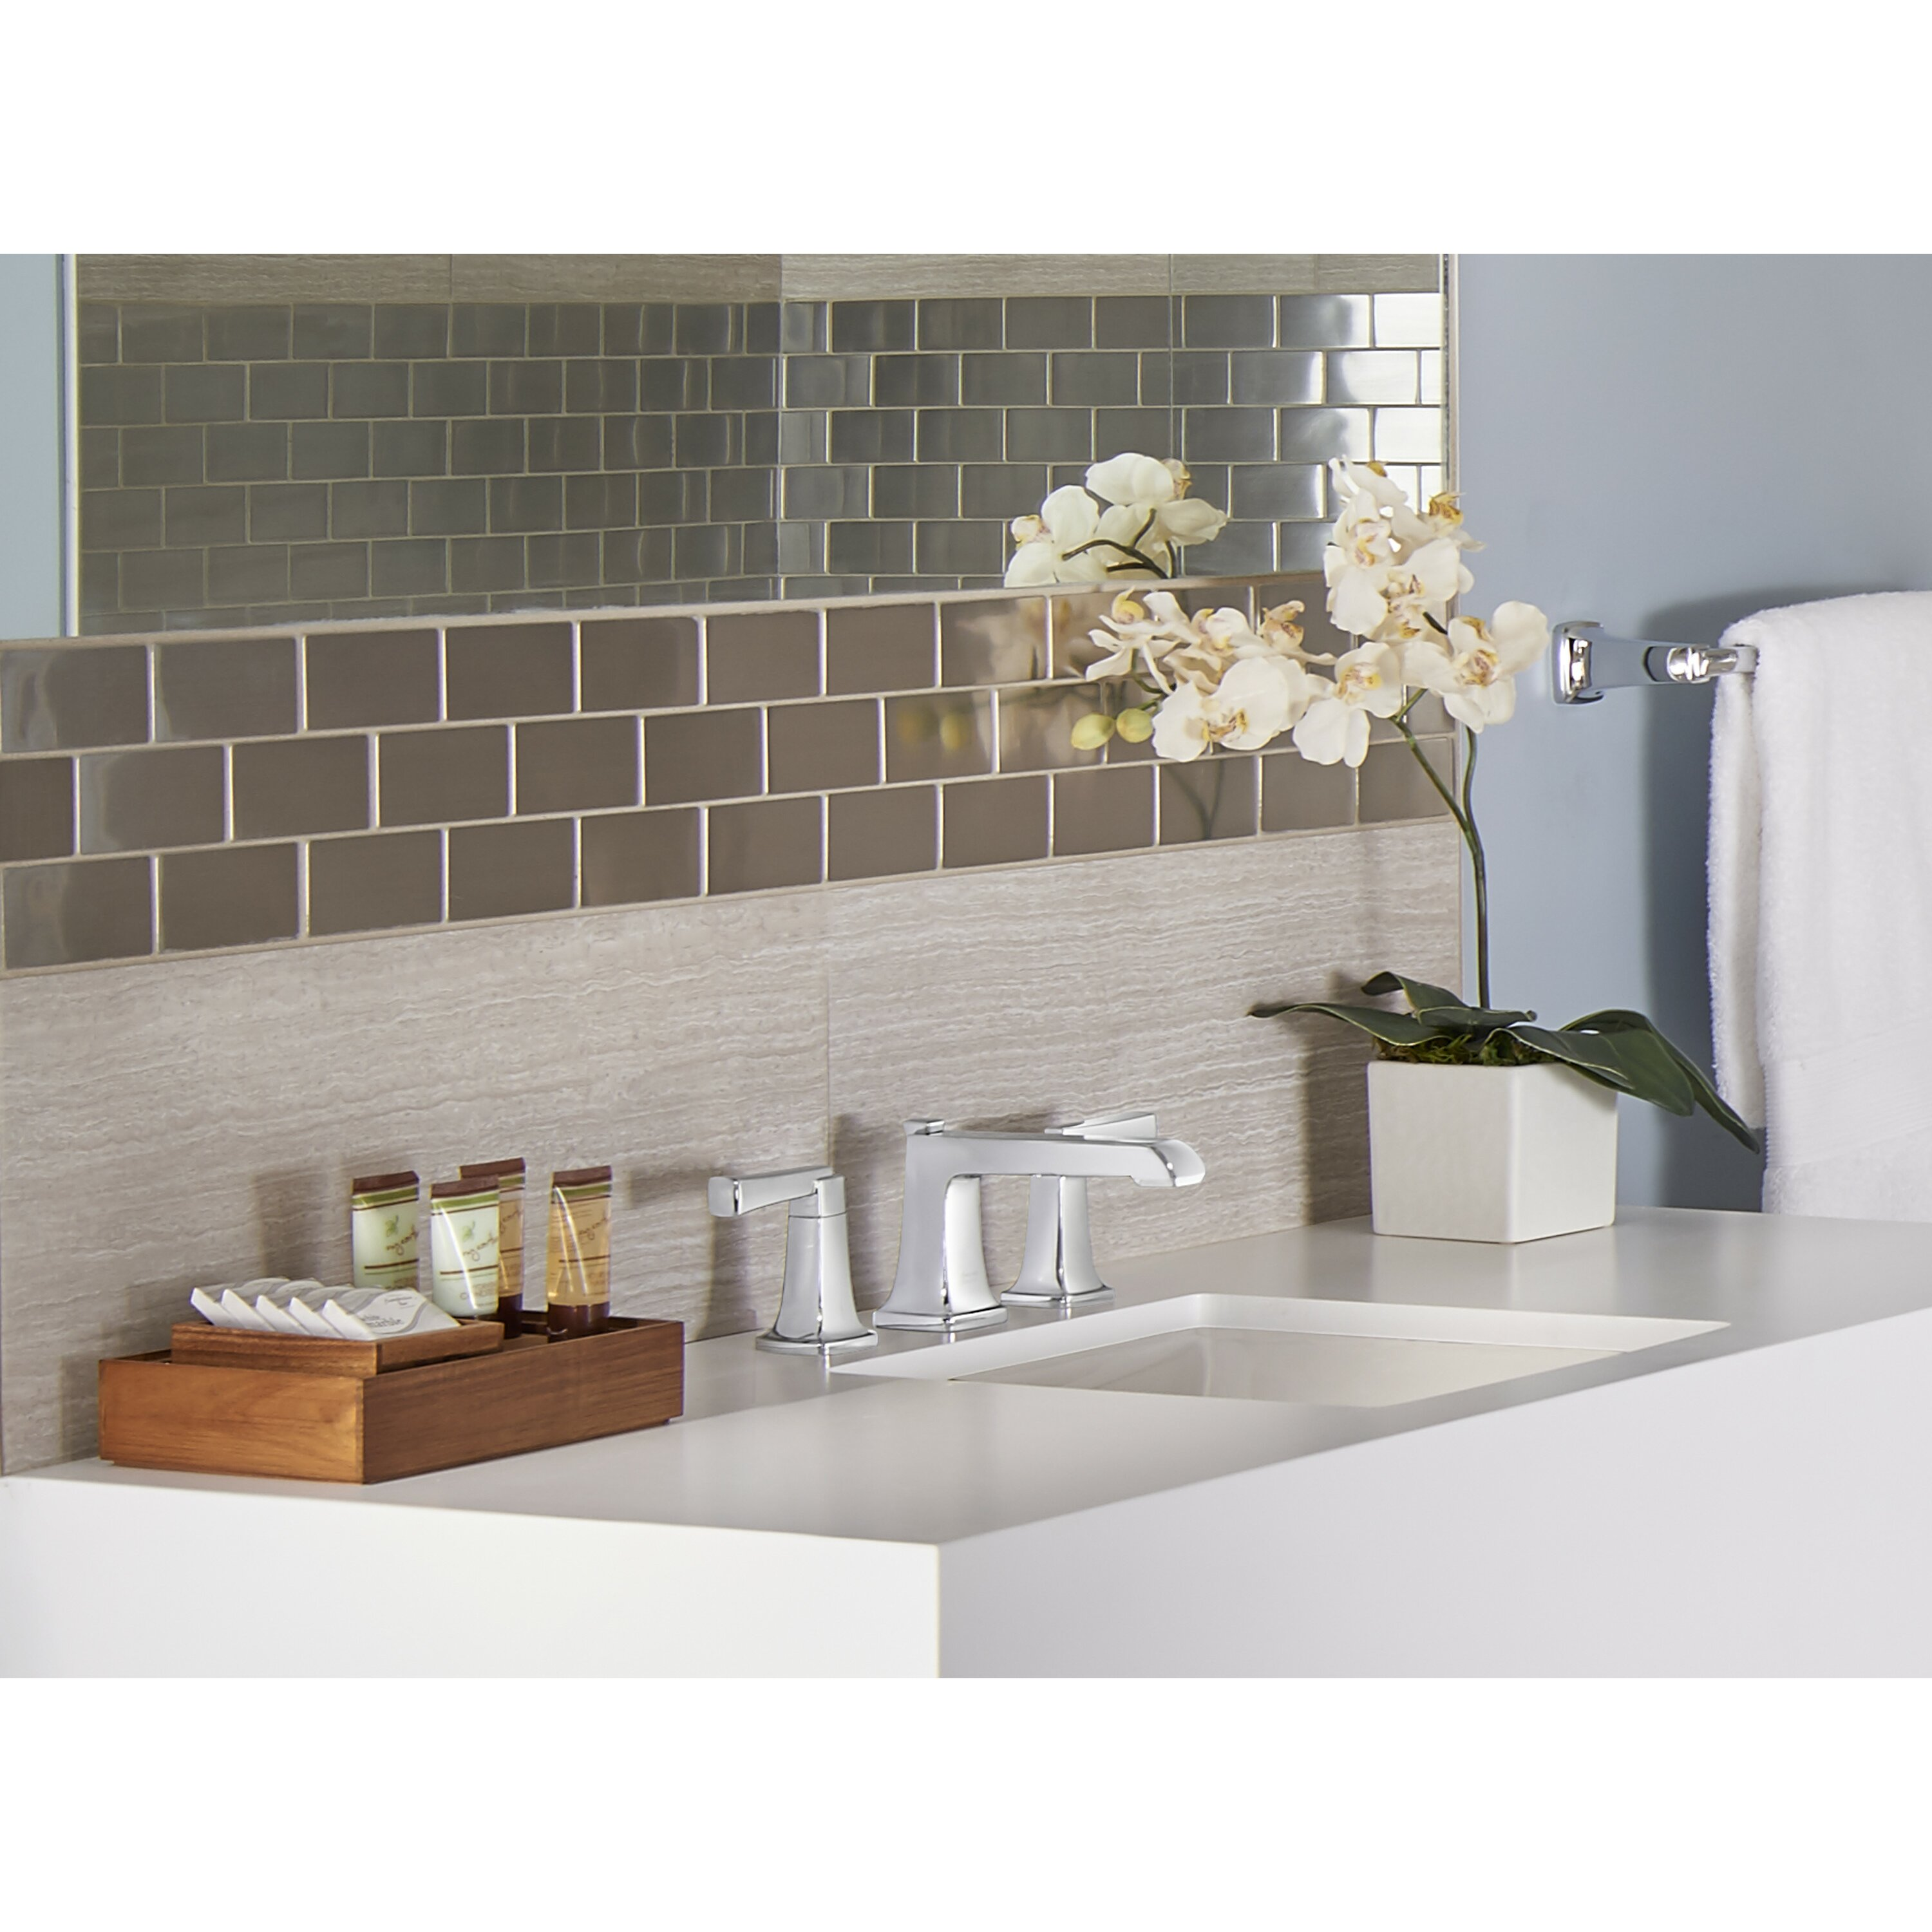 American Standard Townsend Widespread Bathroom Faucet Double Handle with  Drain Assembly. American Standard Townsend Widespread Bathroom Faucet Double